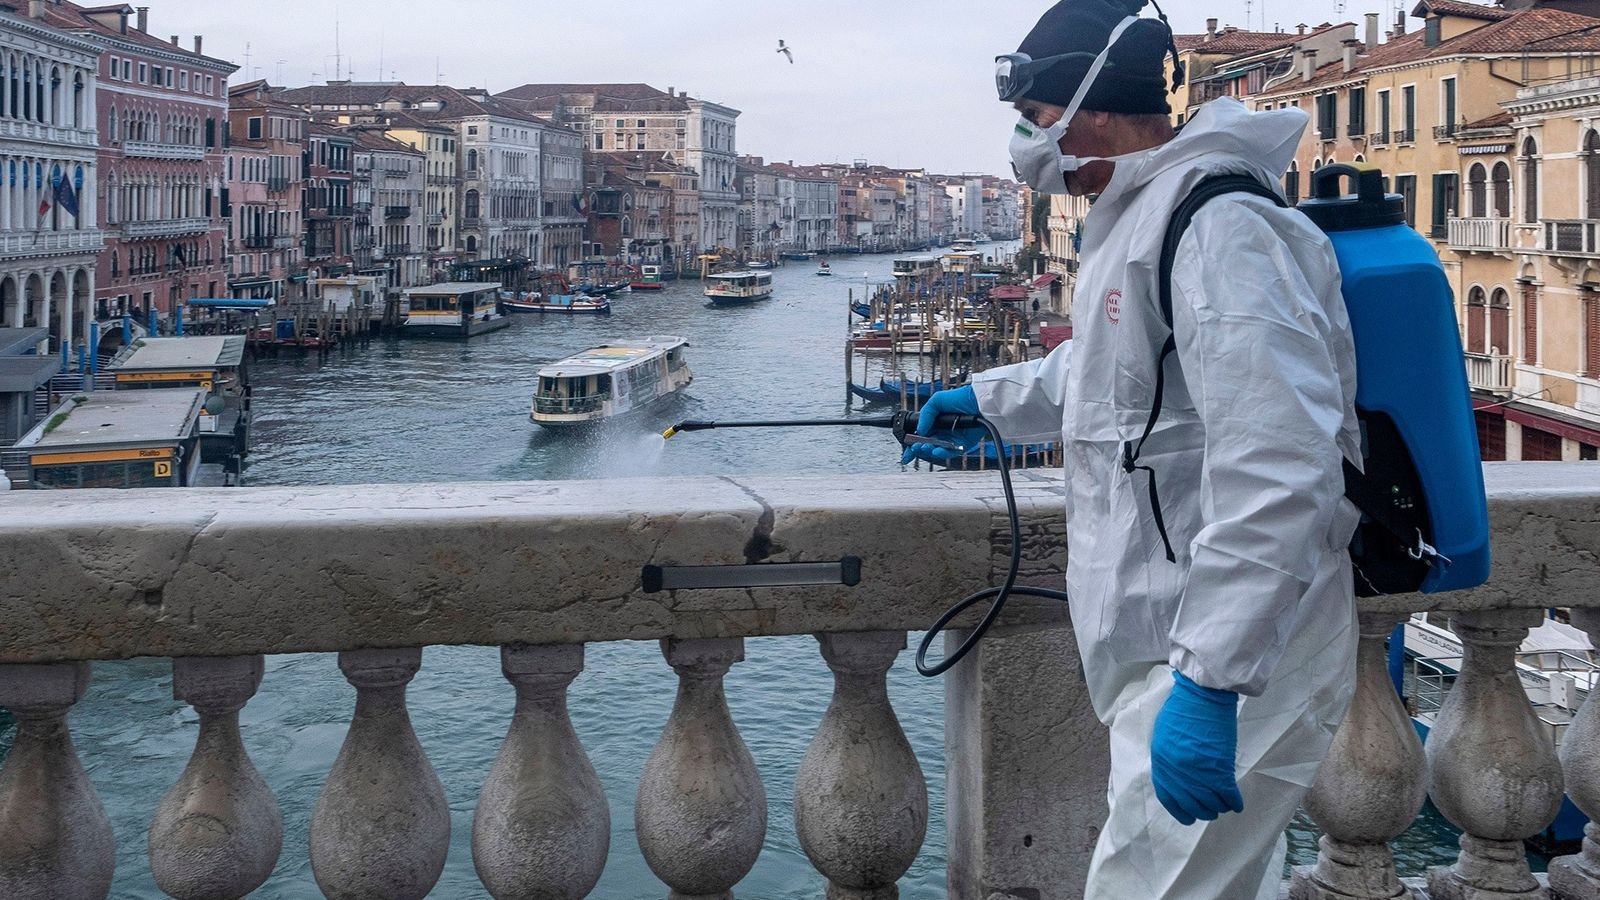 Workers in Venice disinfected sites (the Rialto Bridge pictured here), a day after Italian Prime Minister ...